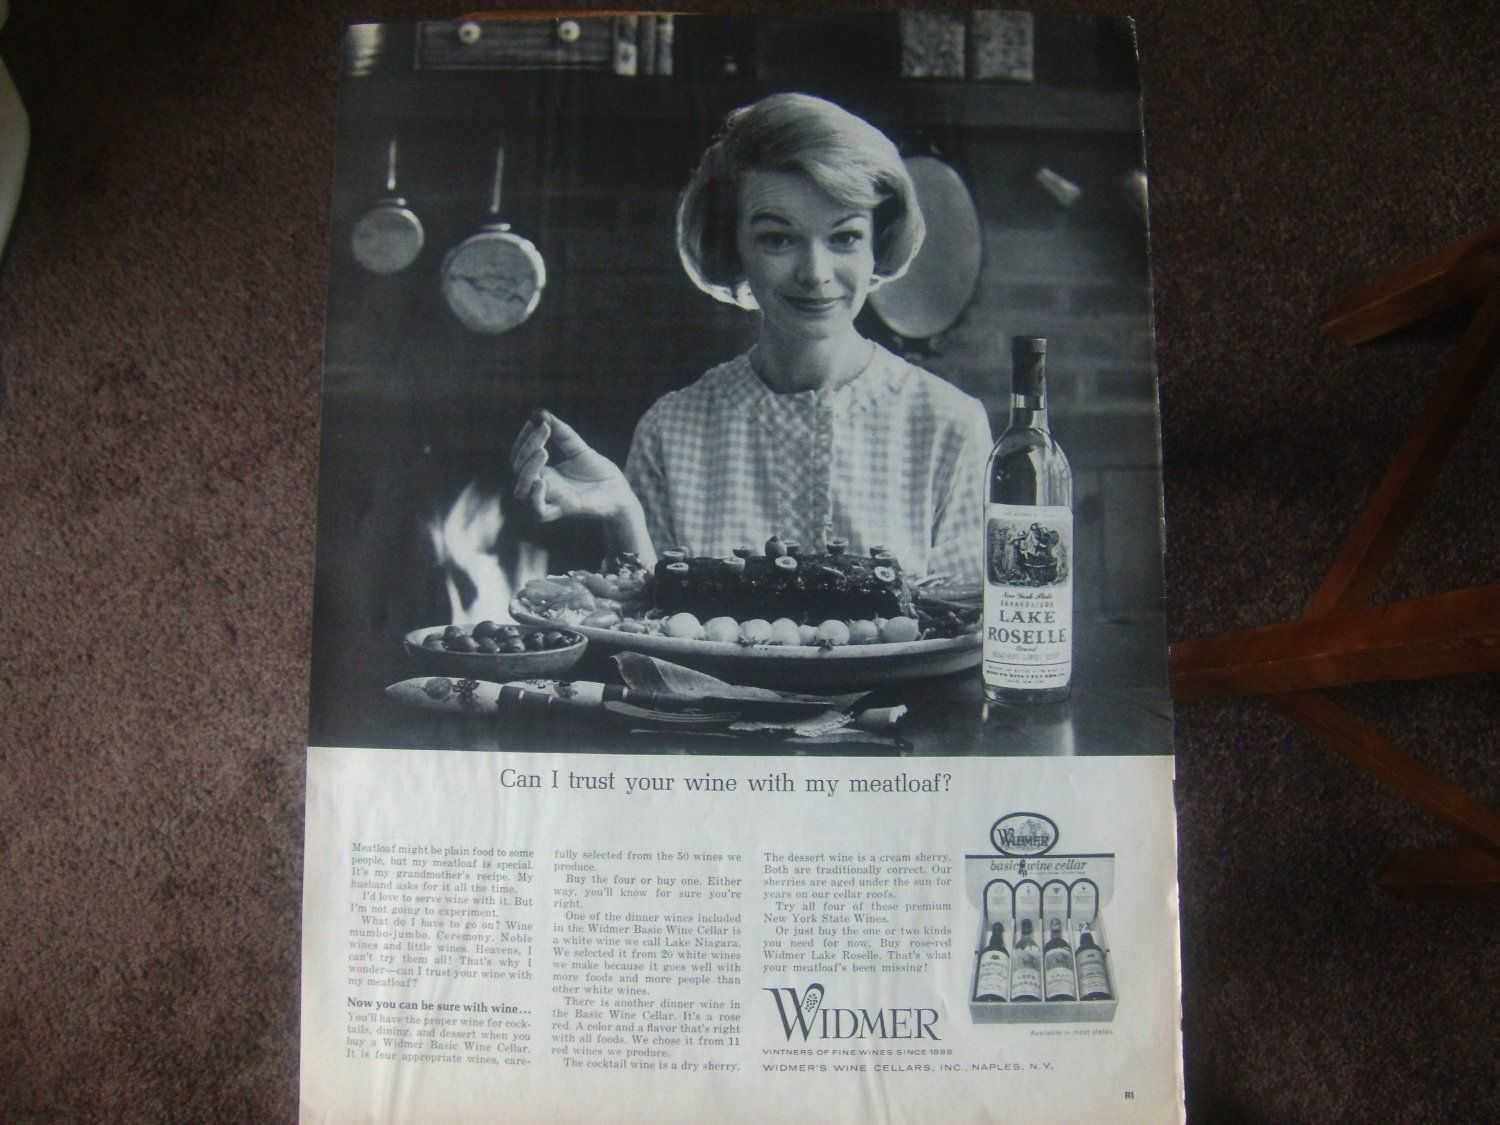 Widmer Wine Cellars Naples NY Pretty Housewife Photo Print Ad  sc 1 st  Pinterest & Widmer Wine Cellars Naples NY Pretty Housewife Photo Print Ad ...